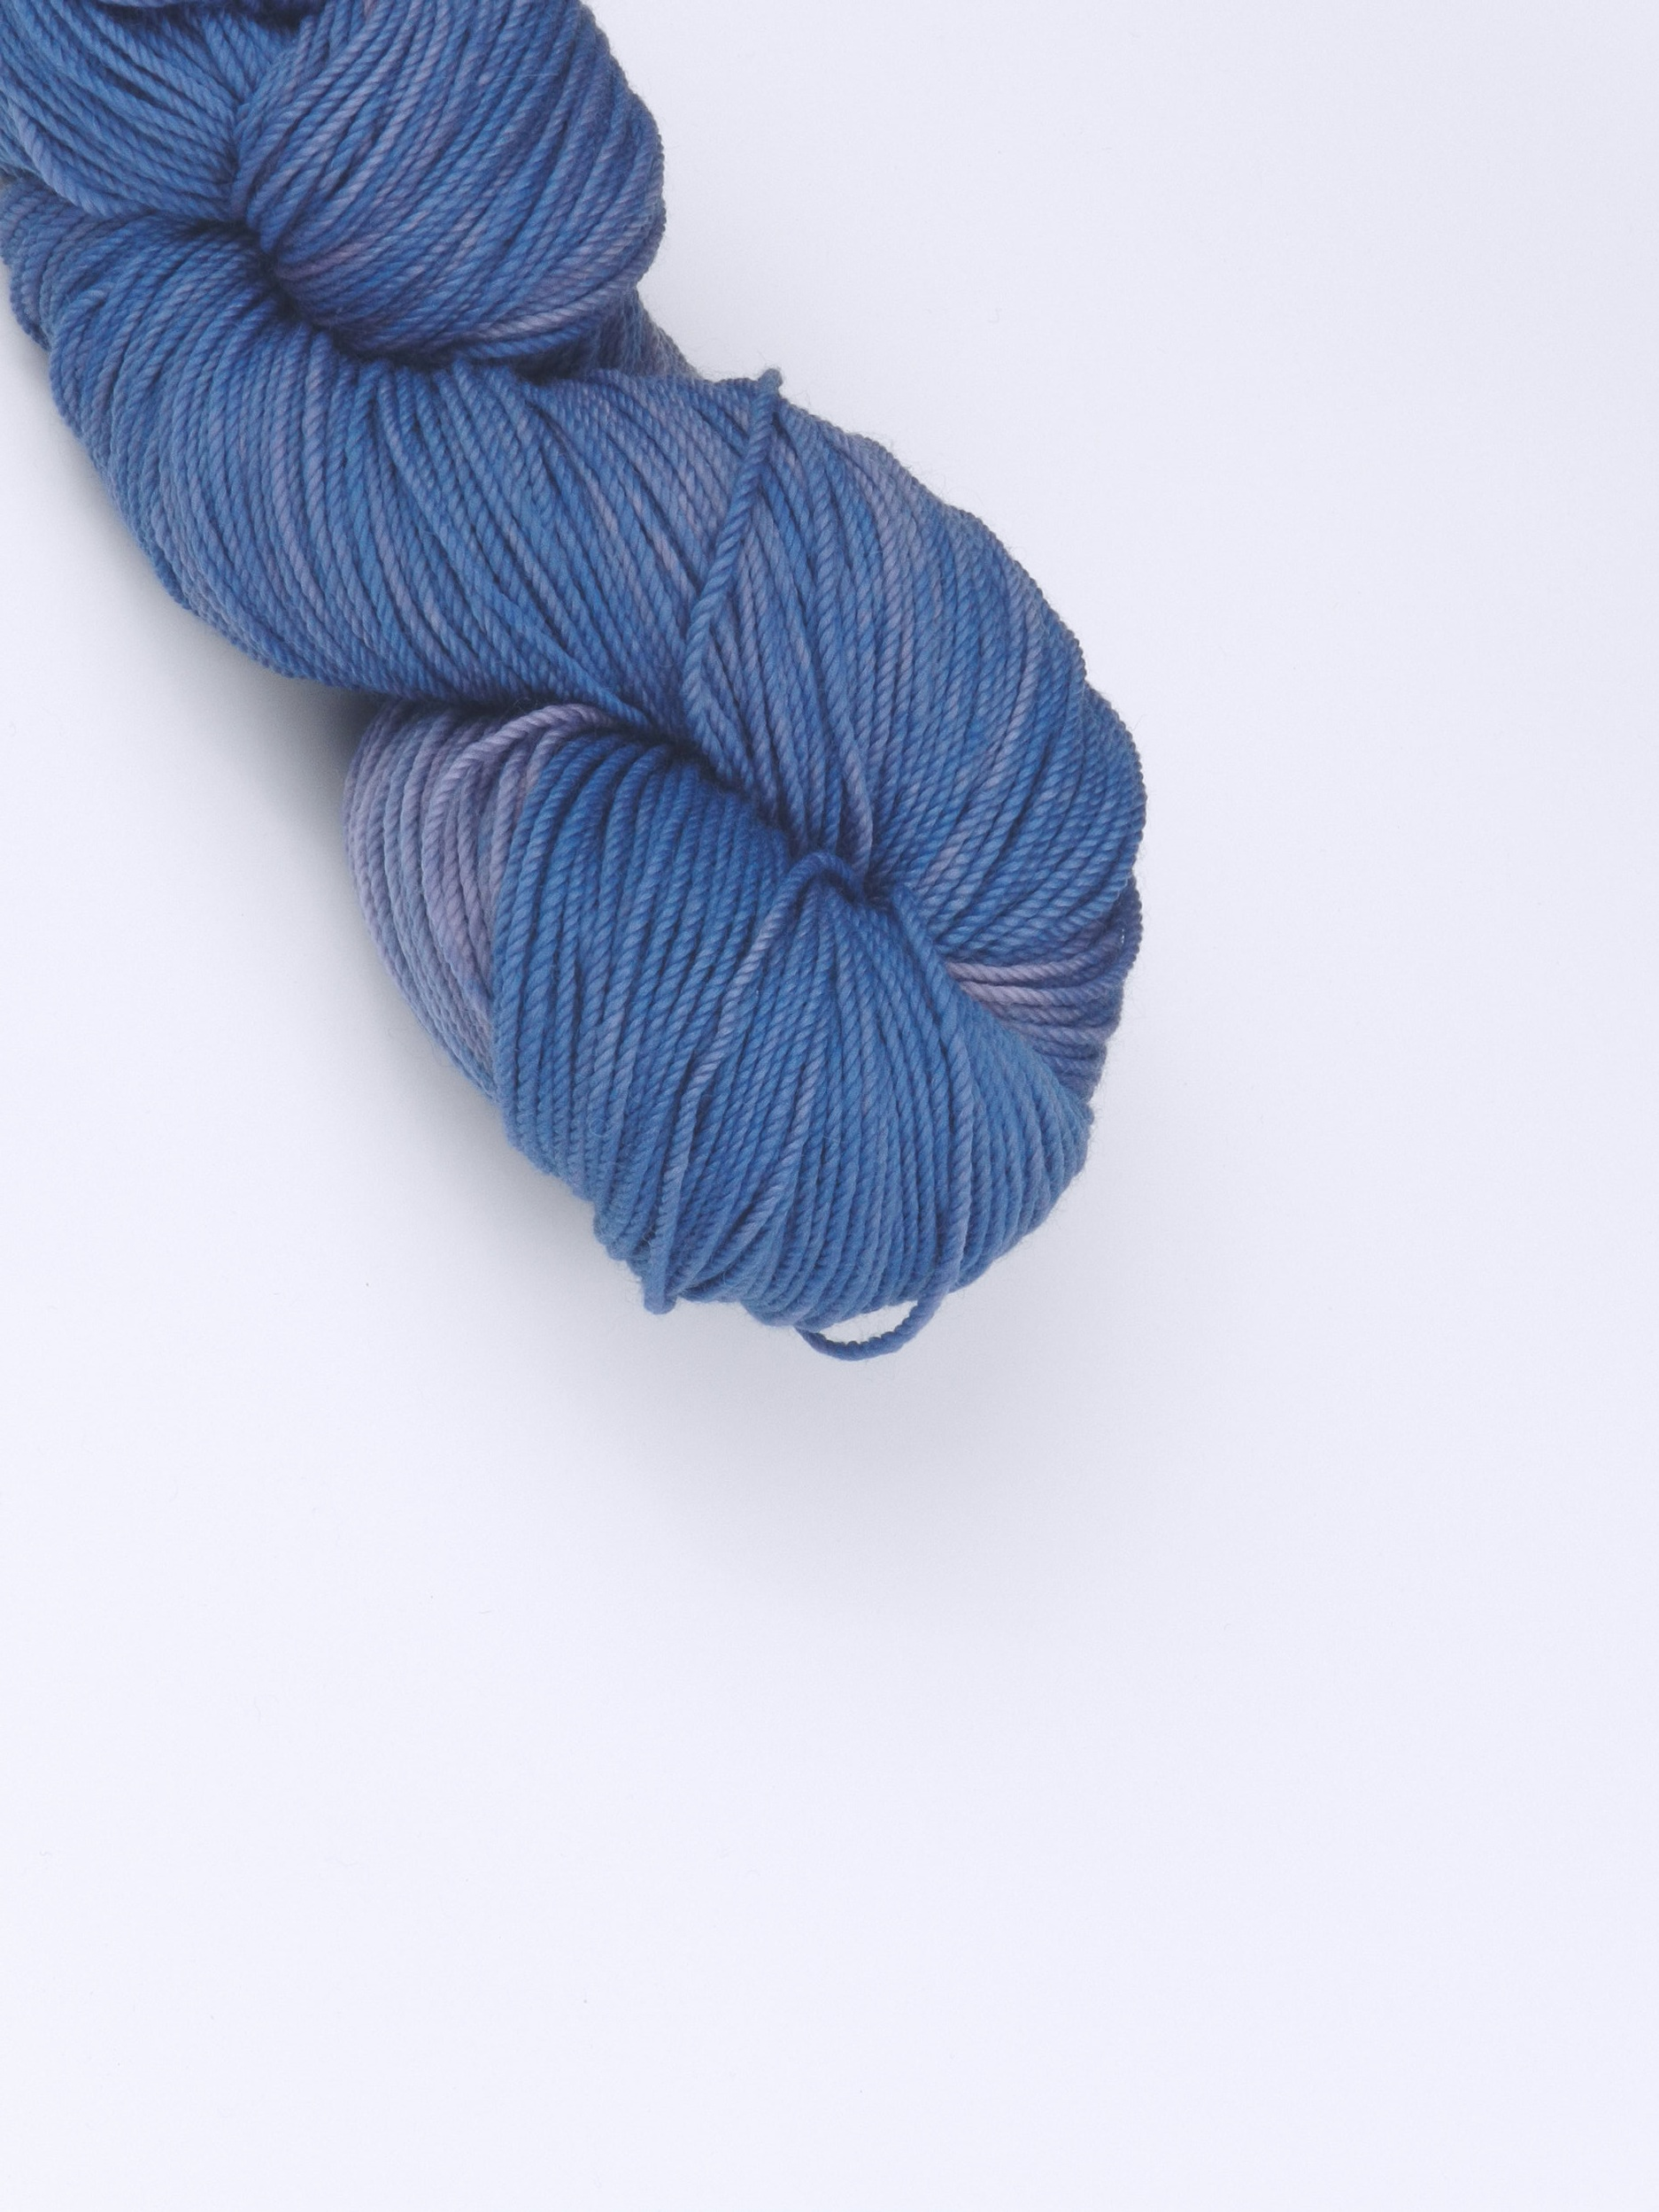 Organic Merino Sport - Naturally Dyed ORGANIC MERINO - 3ply sport - 115g - 256 meters/280 yards.Use US 6-7 / 4-4.5mm needles100% organic merino wool, spun in Canada and hand-dyed with plant dyes in Madeira Park BC by EVERLEA YARNShown in Twilight